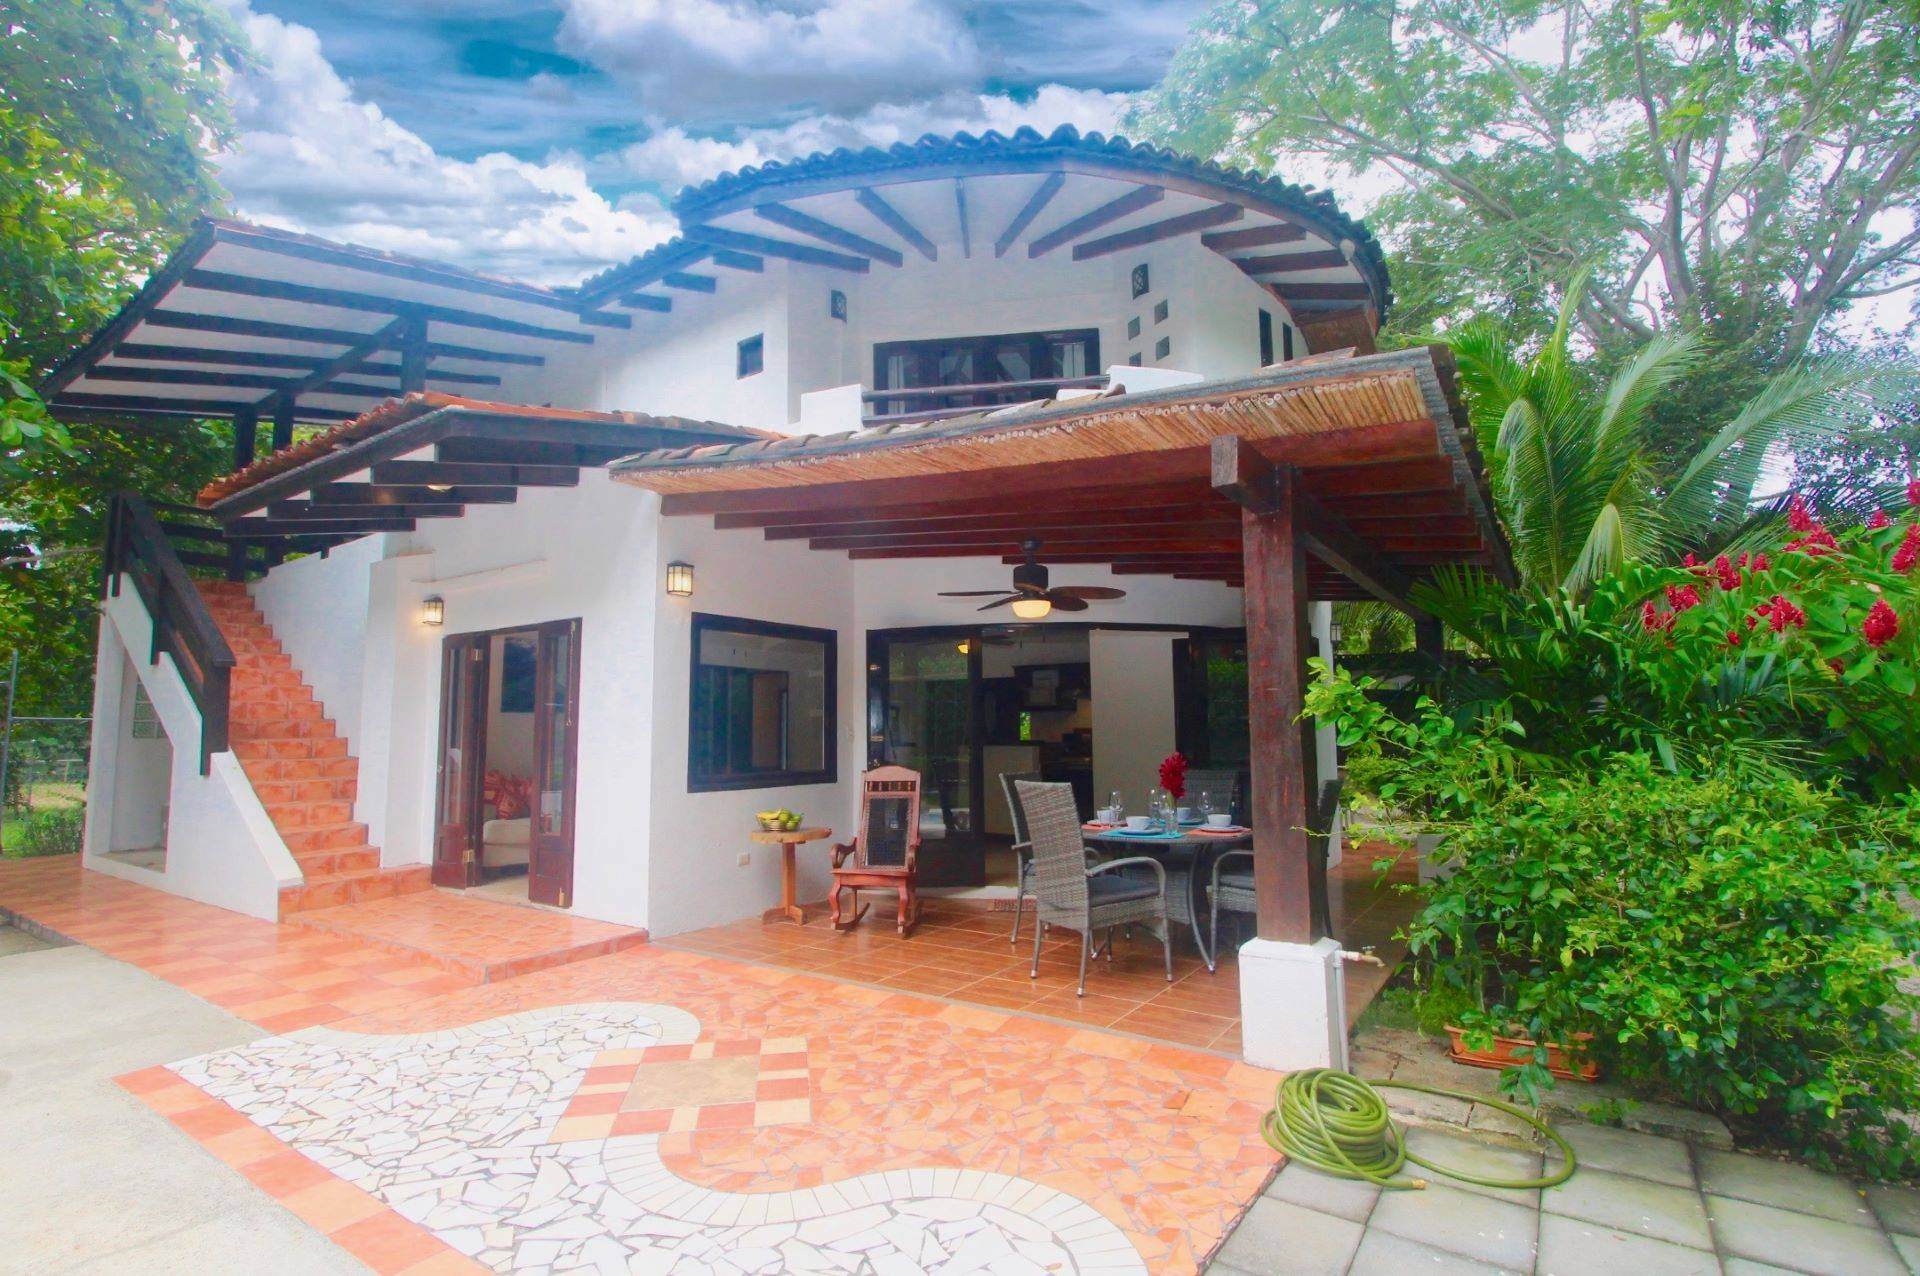 Surf House Playa Grande-Sanctuary in the Heart of Playa Grande!